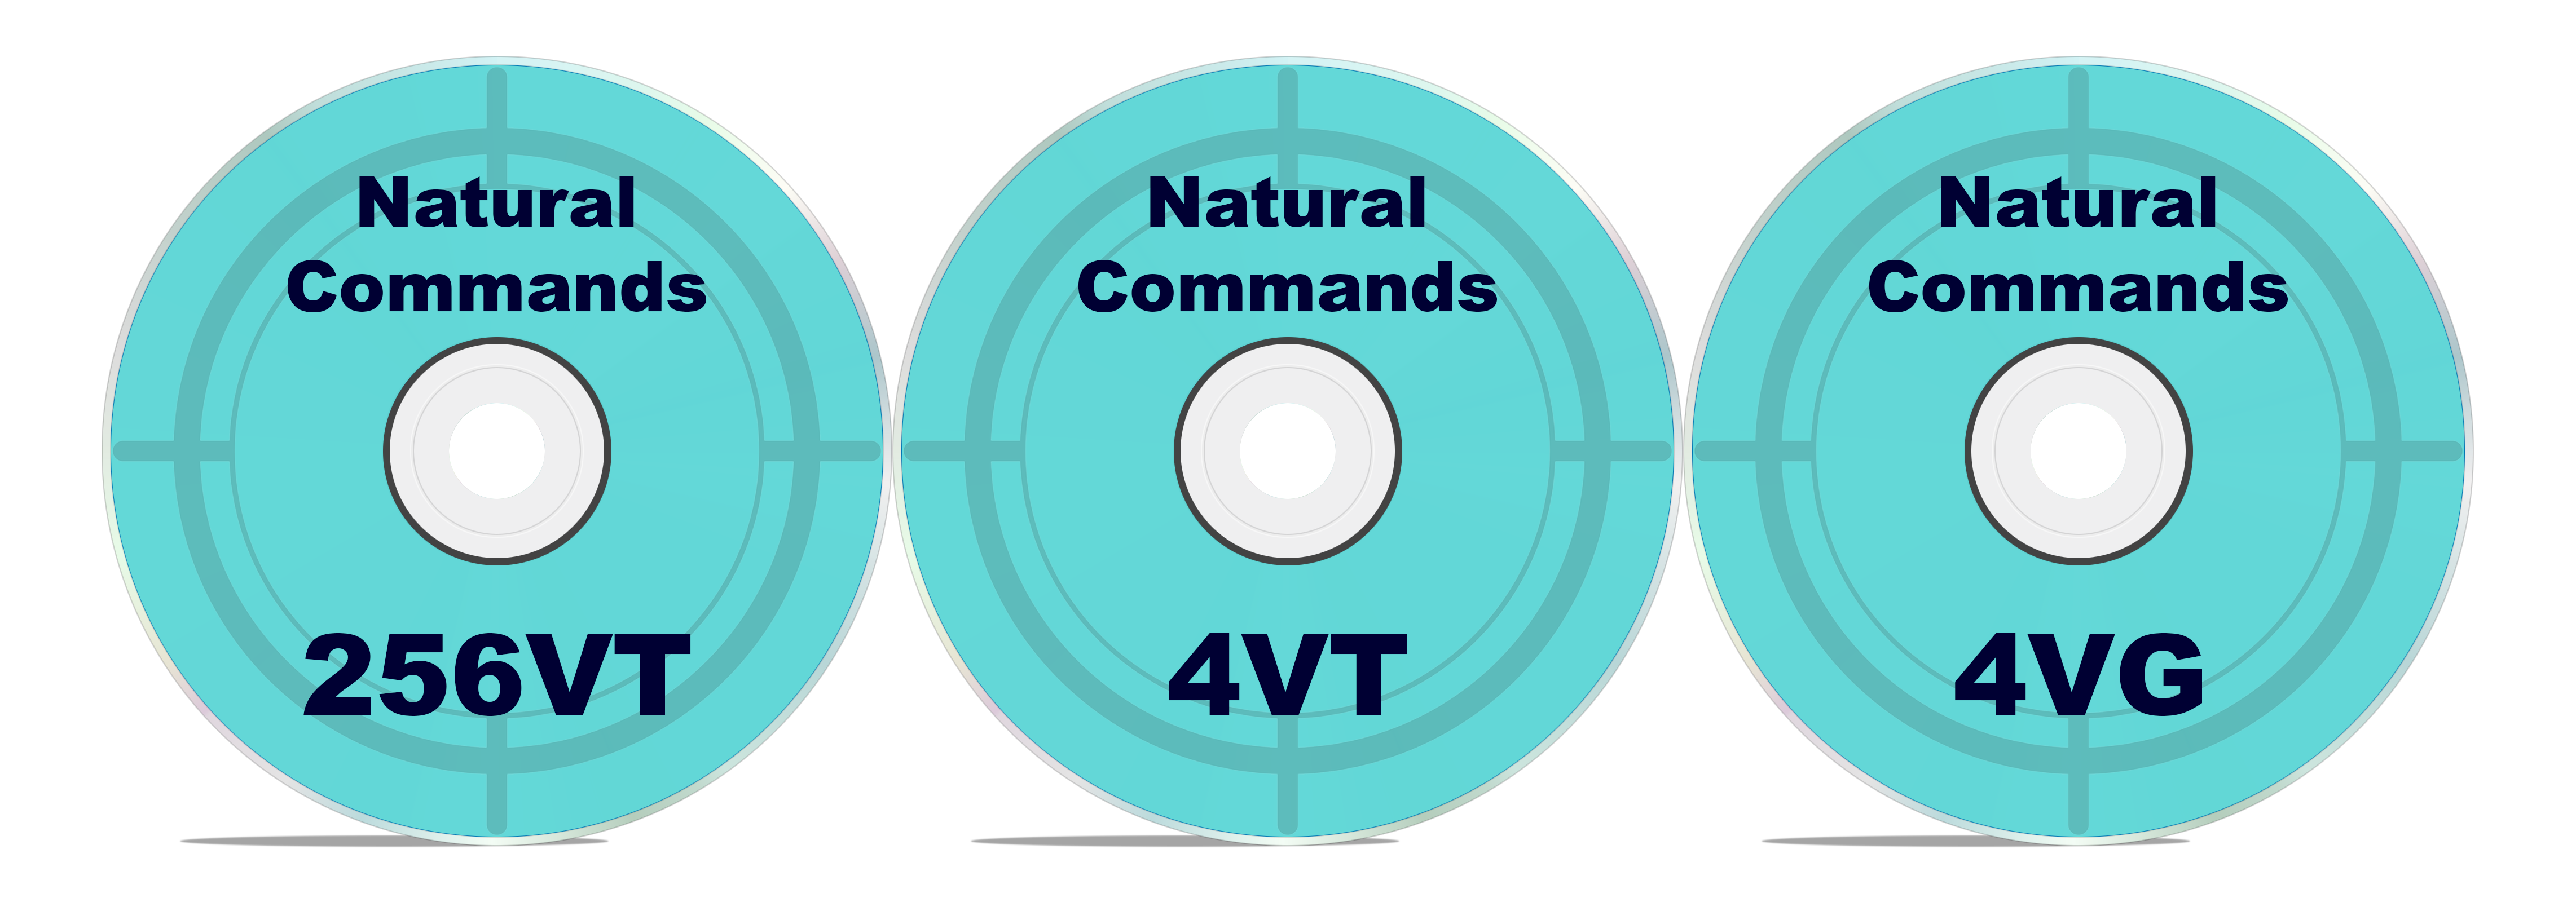 Natural Commands